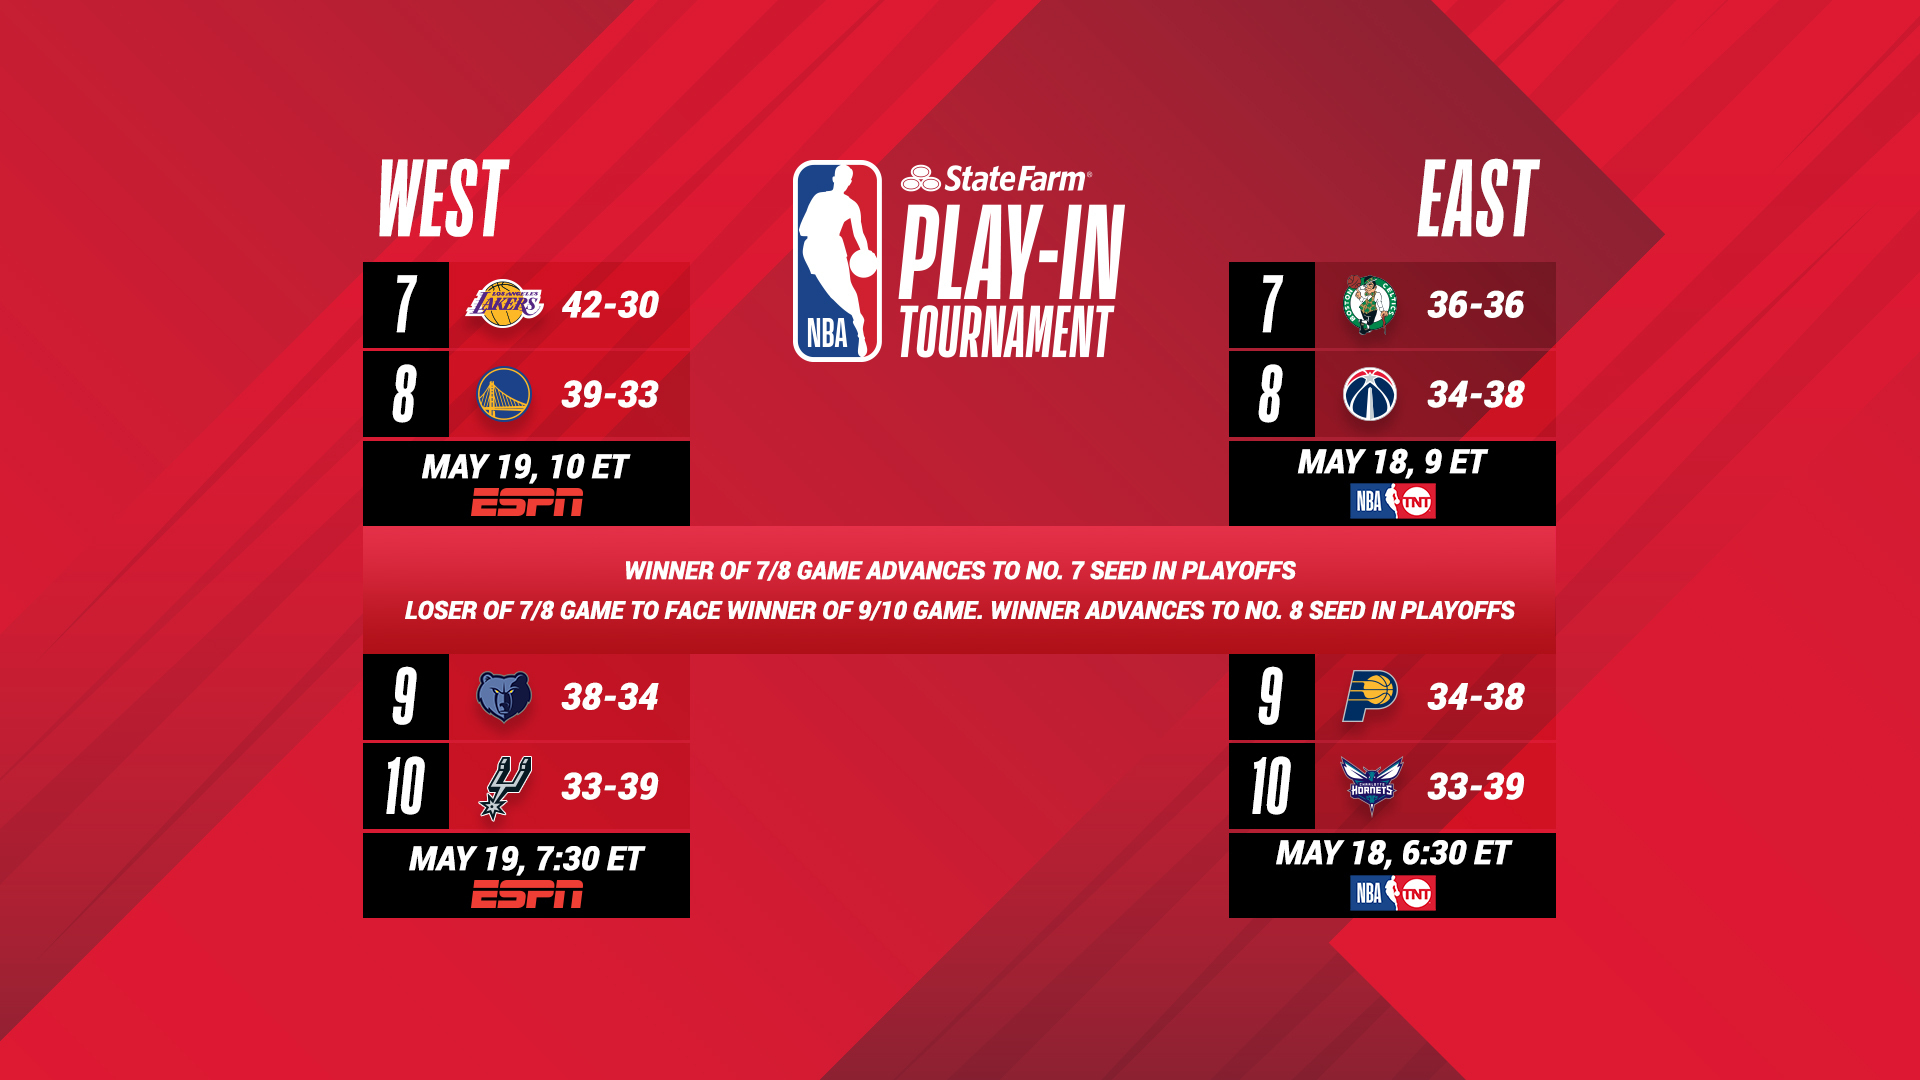 2021 NBA Play-In Tournament schedule